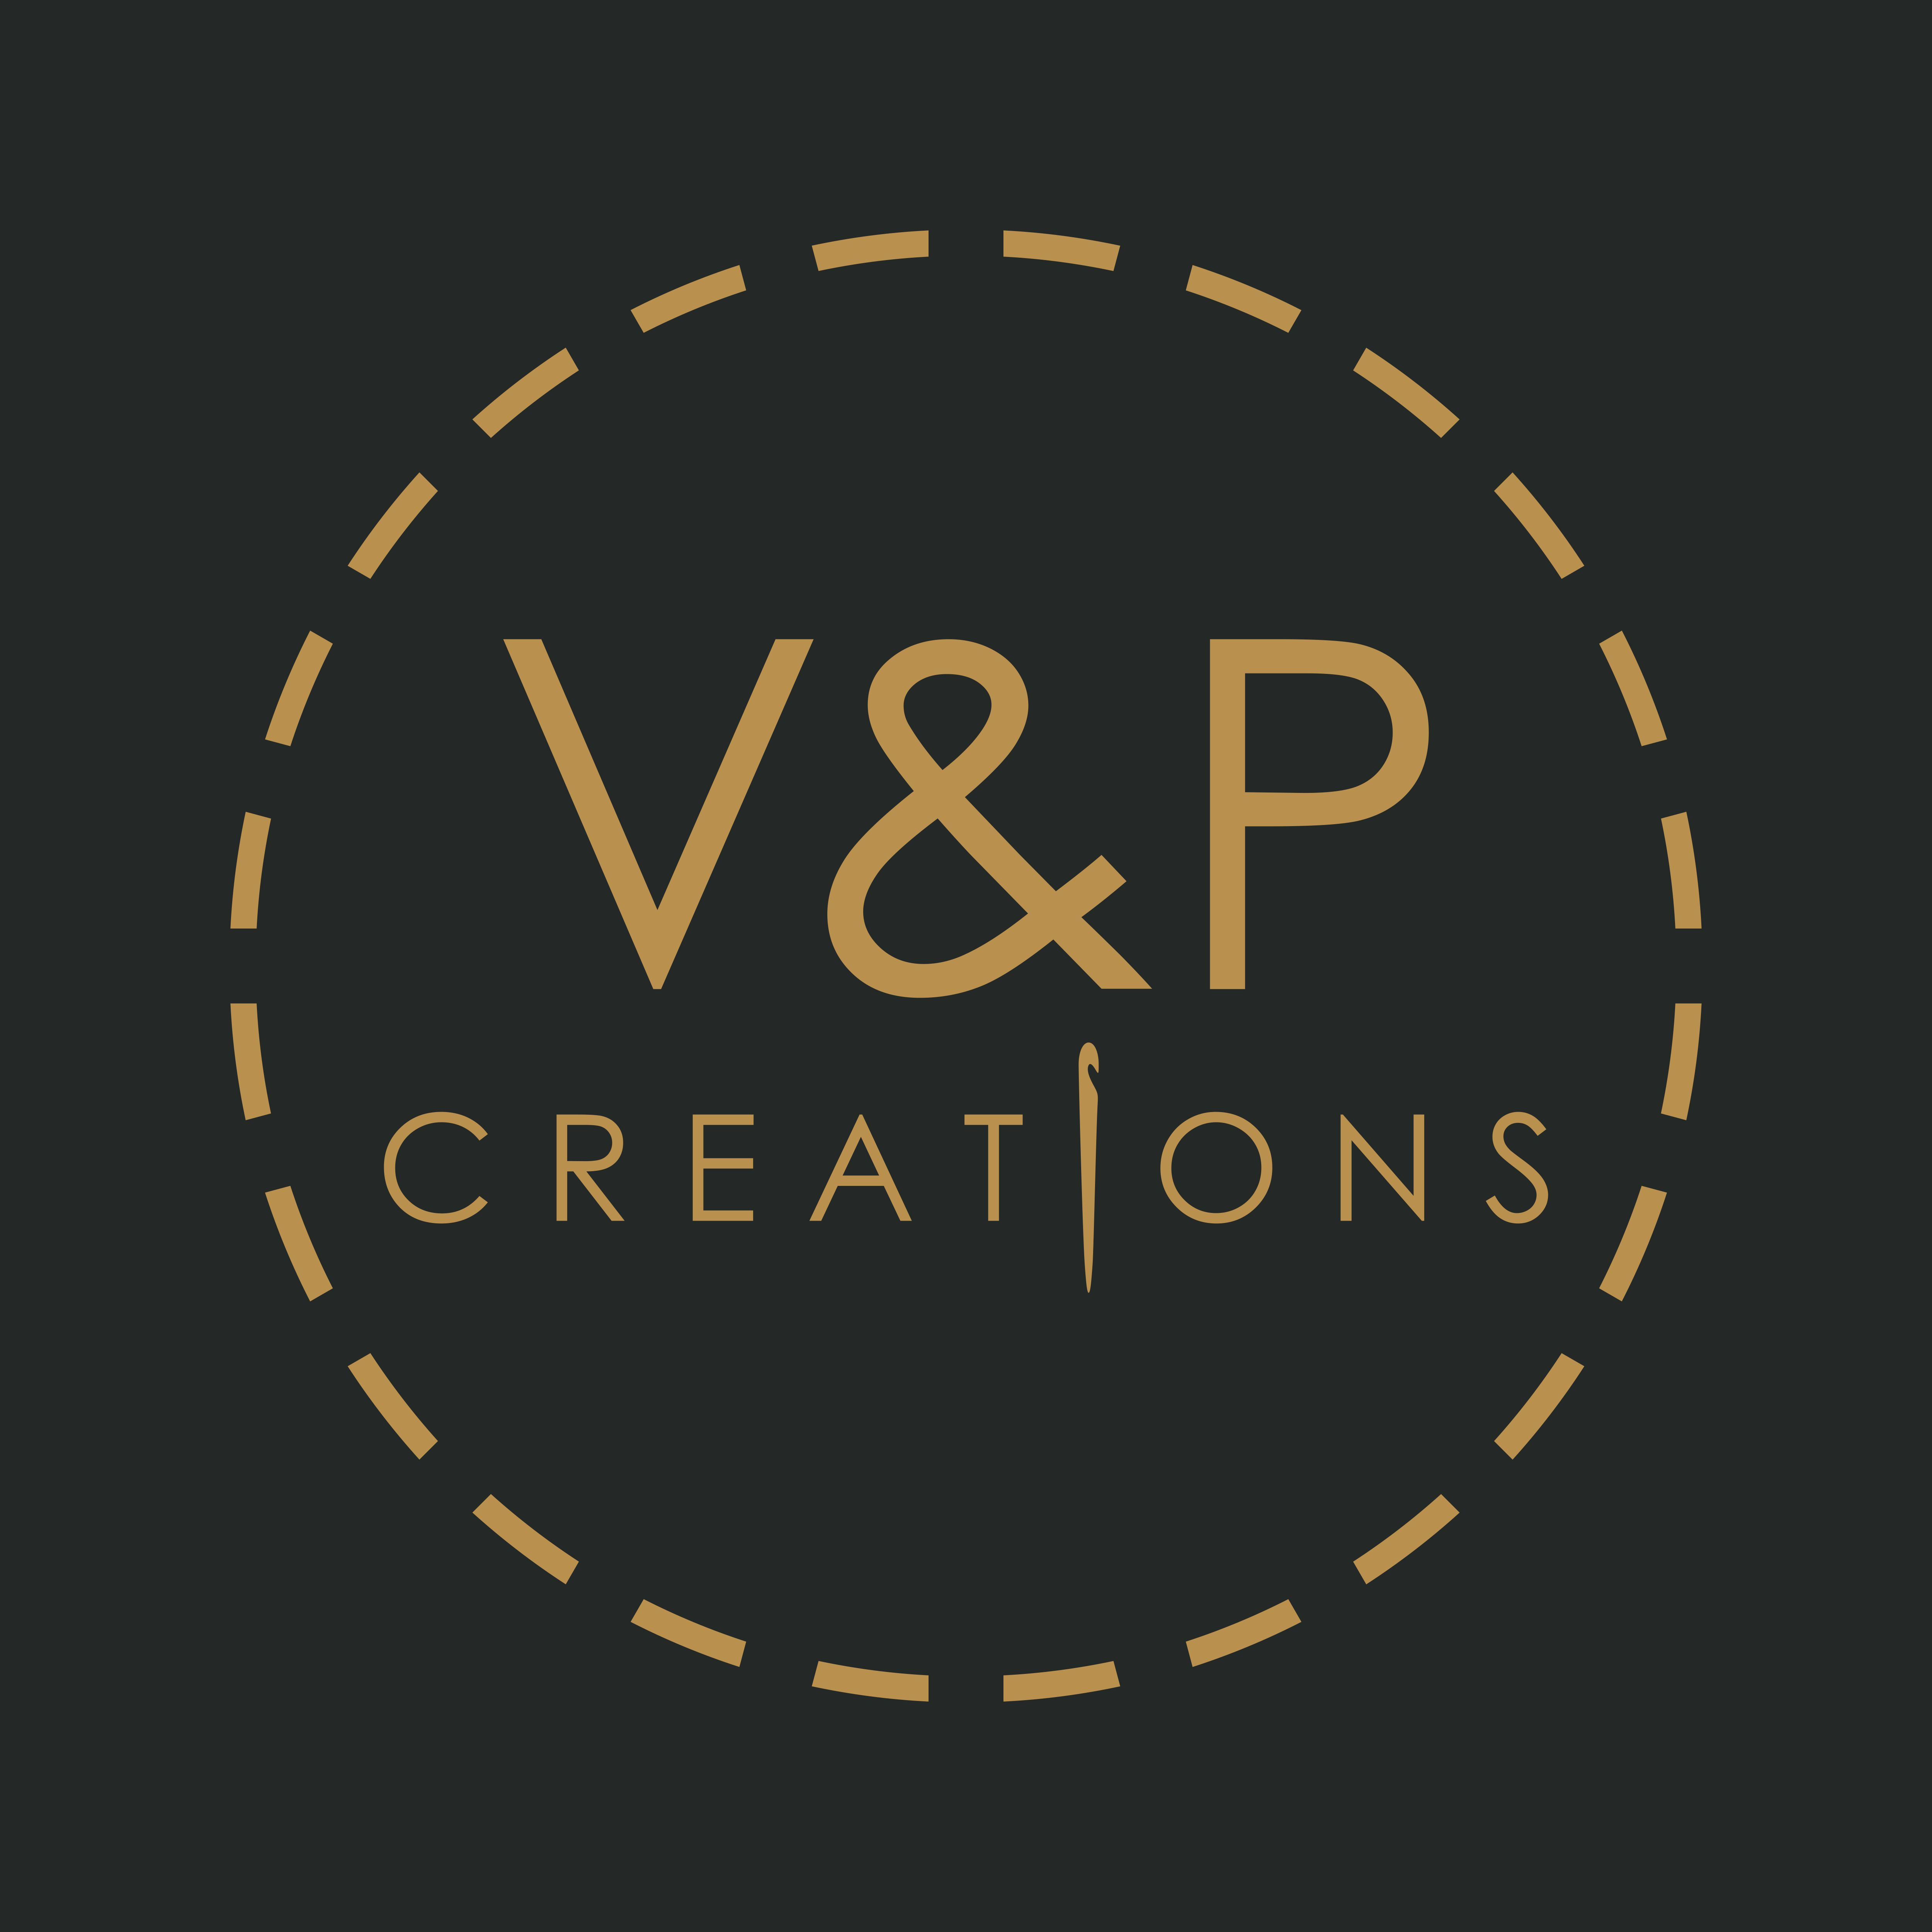 V&P Creations is looking for its logo and digital identity